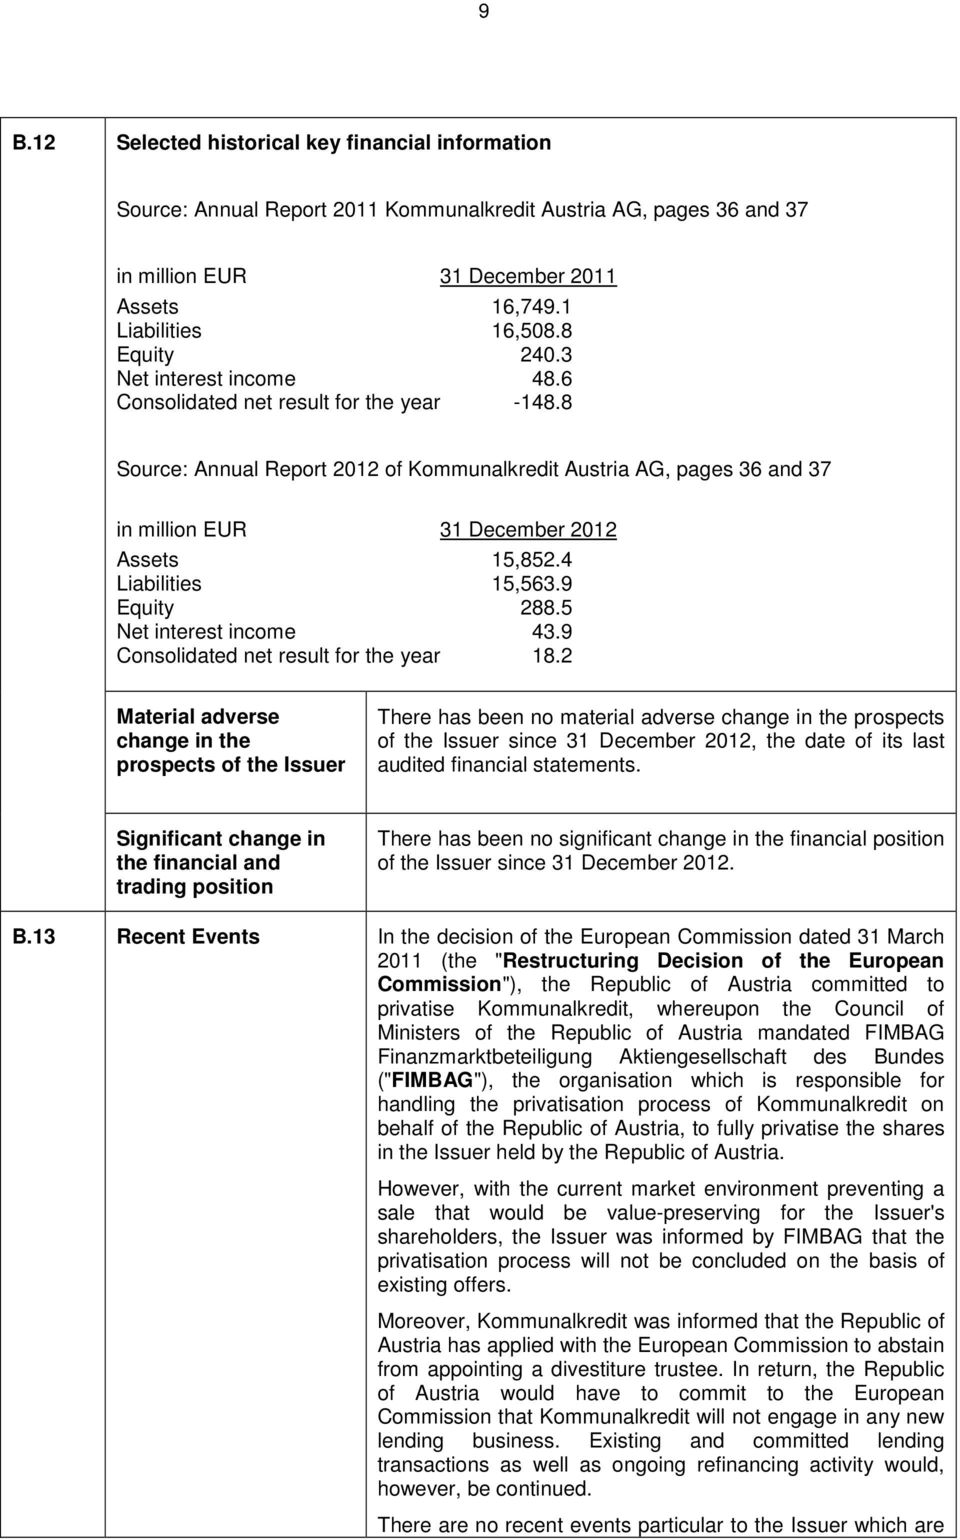 8 Source: Annual Report 2012 of Kommunalkredit Austria AG, pages 36 and 37 in million EUR 31 December 2012 Assets 15,852.4 Liabilities 15,563.9 Equity 288.5 Net interest income 43.